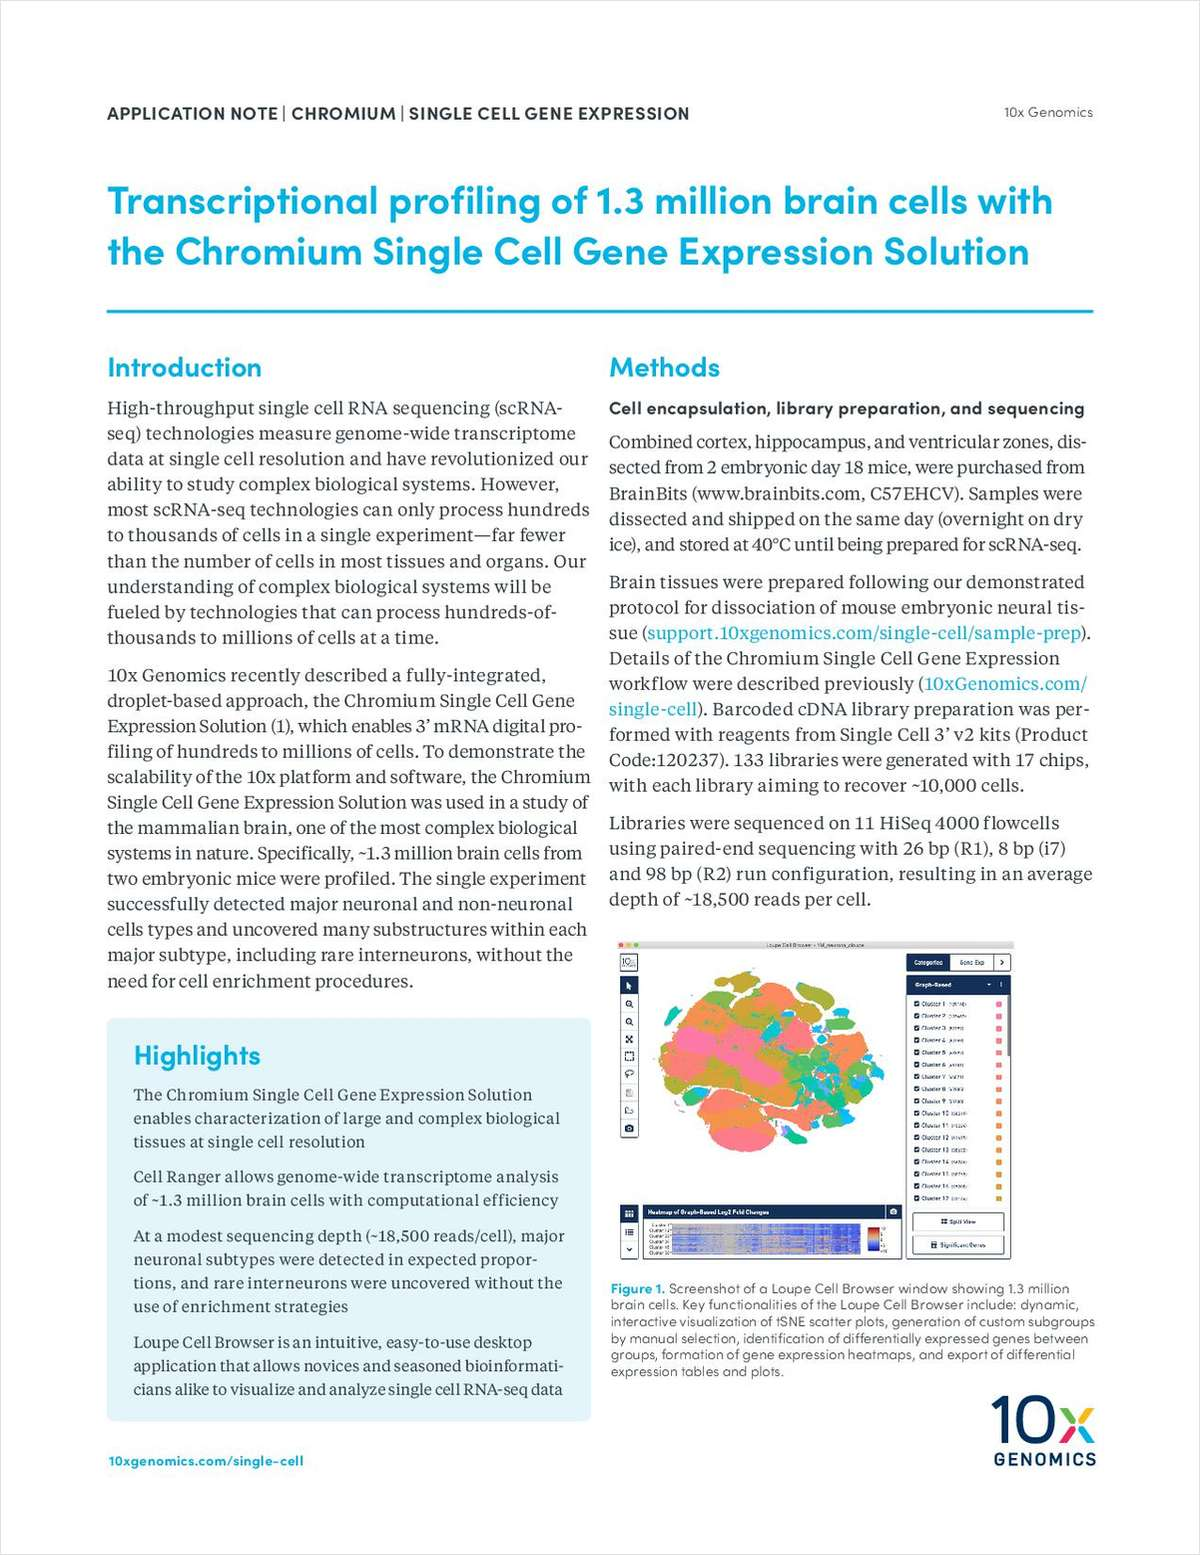 Transcriptional Profiling of 1.3 Million Brain Cells with the Chromium Single Cell Gene Expression Solution